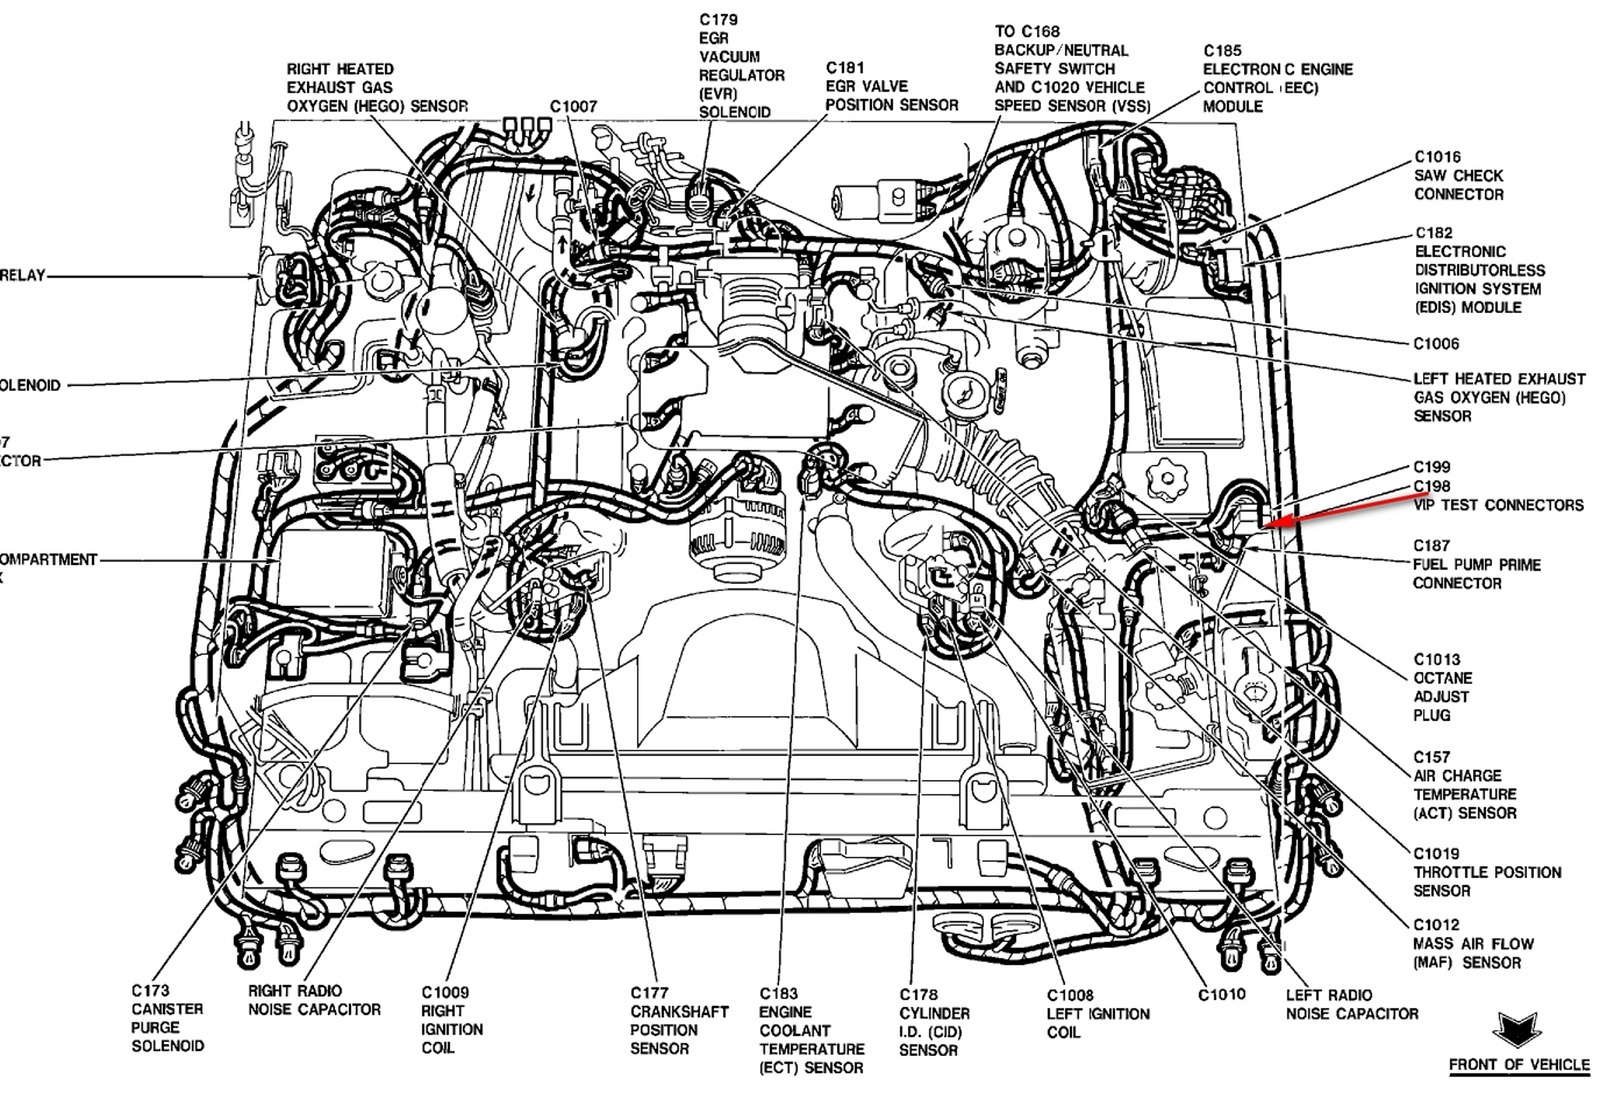 Discussion T16270 ds545905 on chevrolet ect sensor location